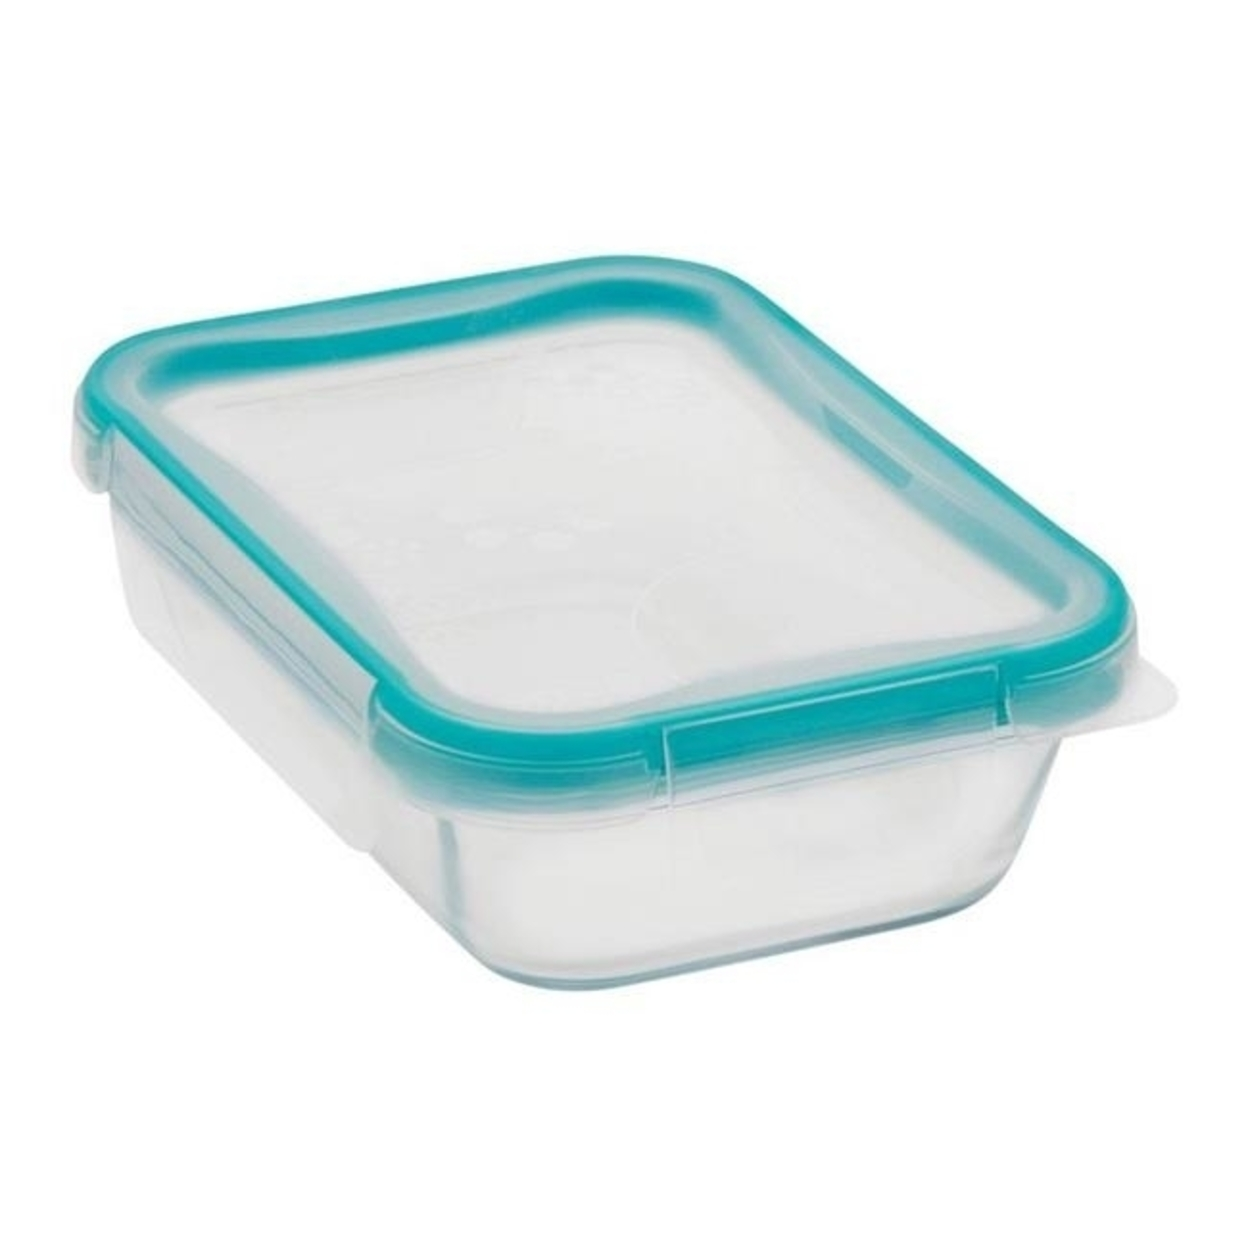 World Kitchen 1109307 Snap Ware Rectangle with Lid-2 Cups- pack of 4 5a39a848e224617492061071